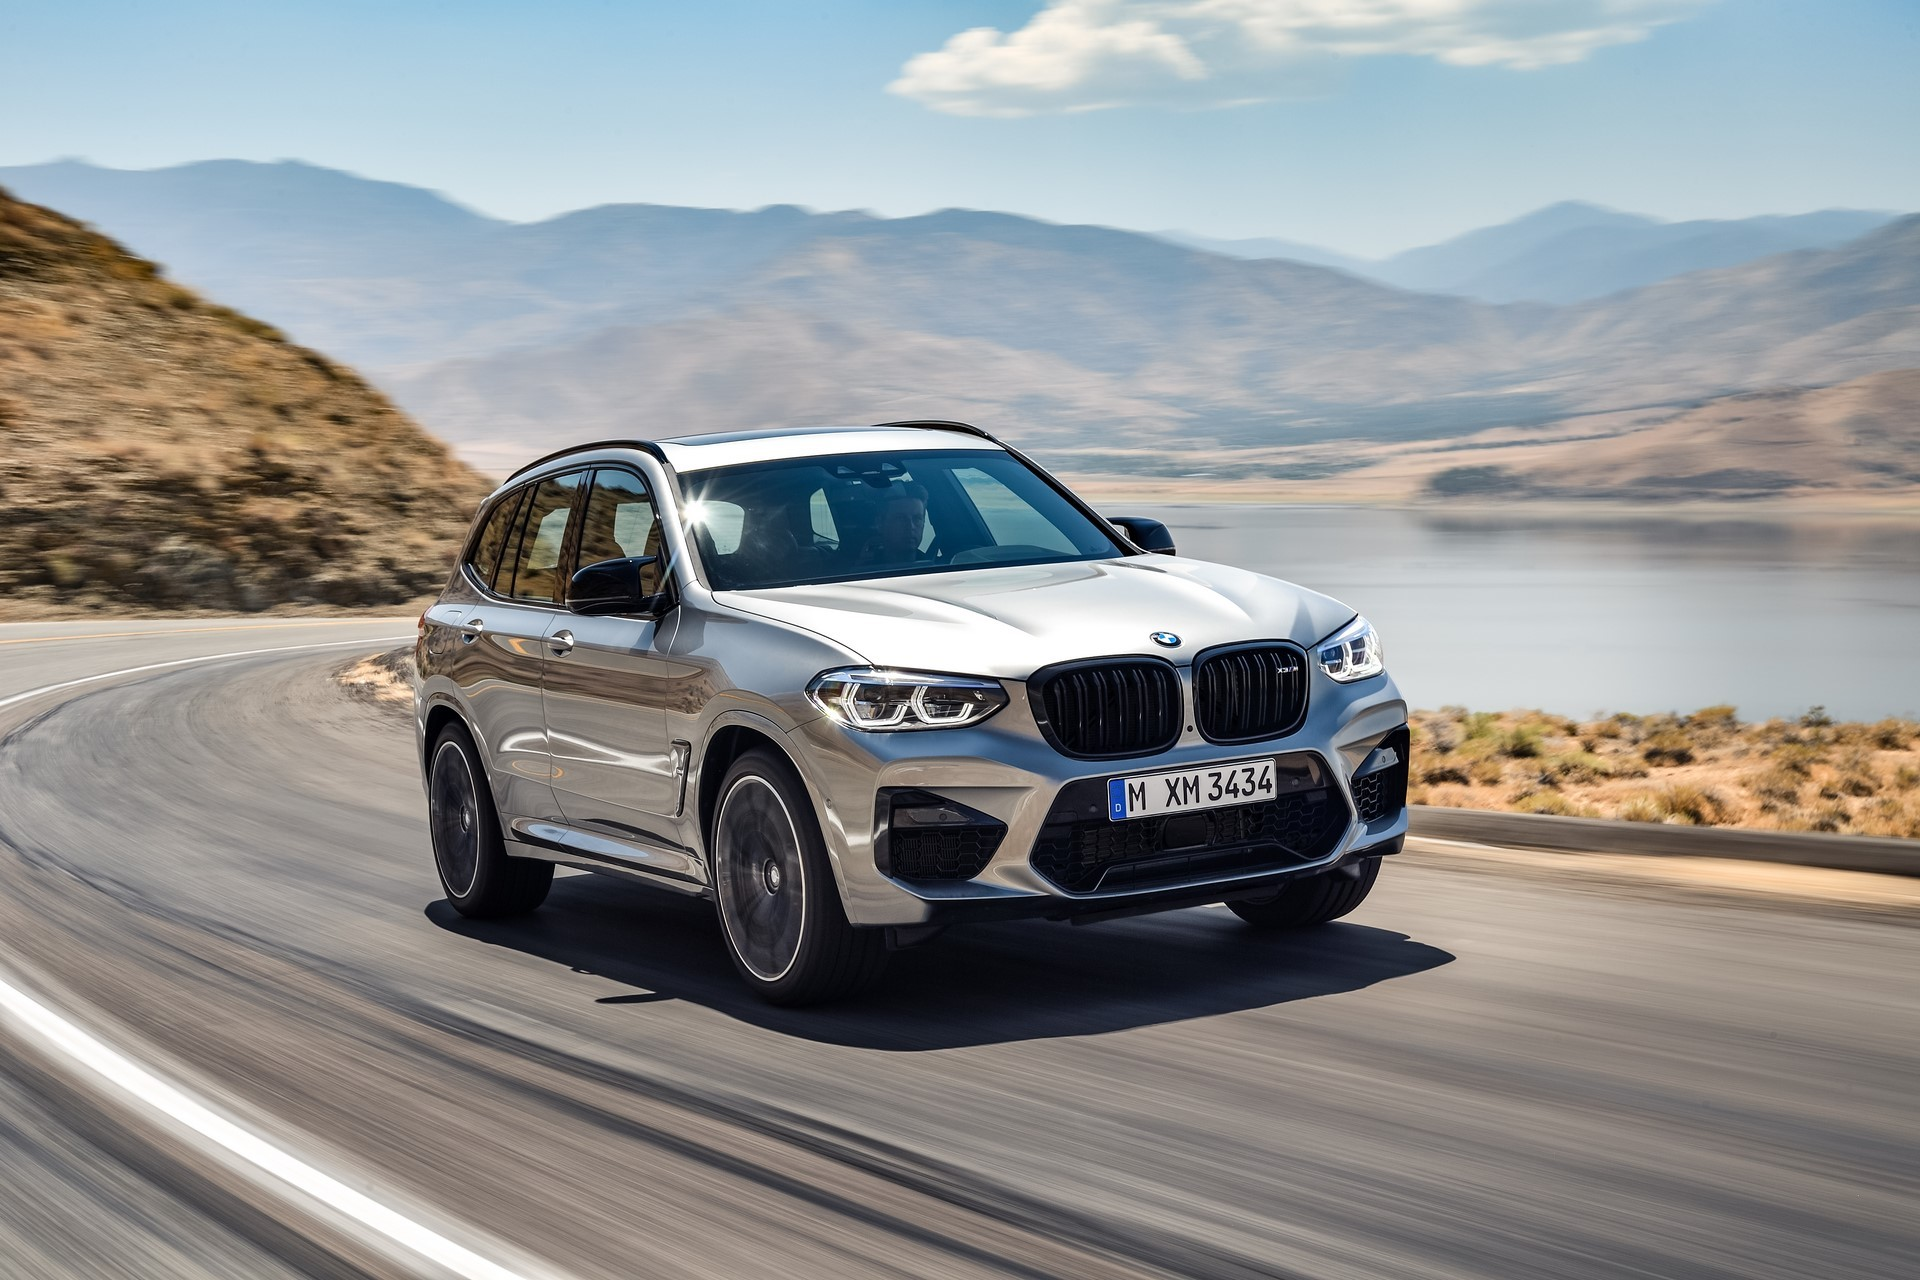 BMW X3 M and X4 M 2019 (23)